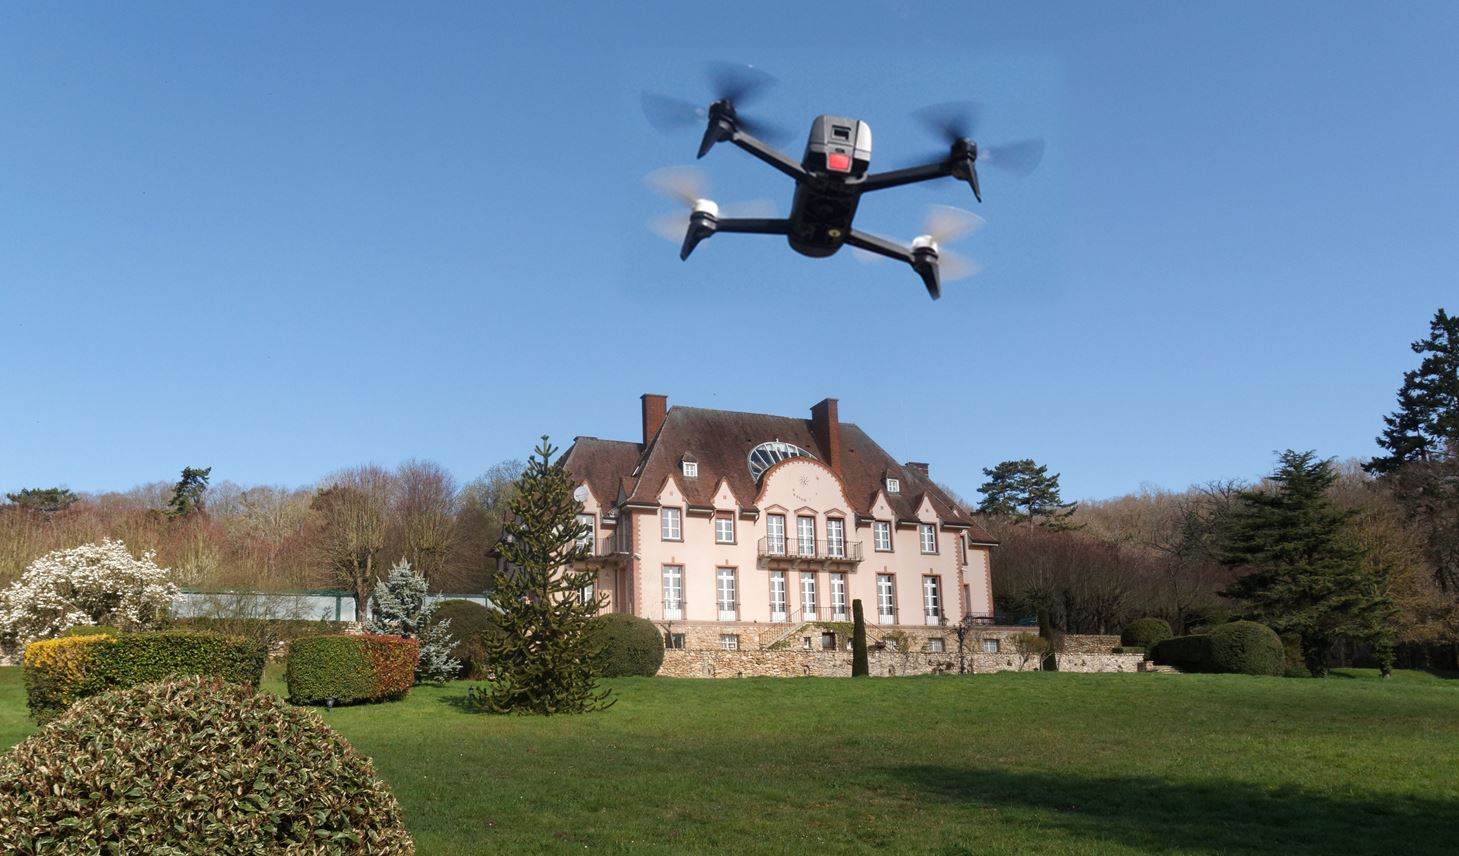 Best Drones for Real Estate in 2020